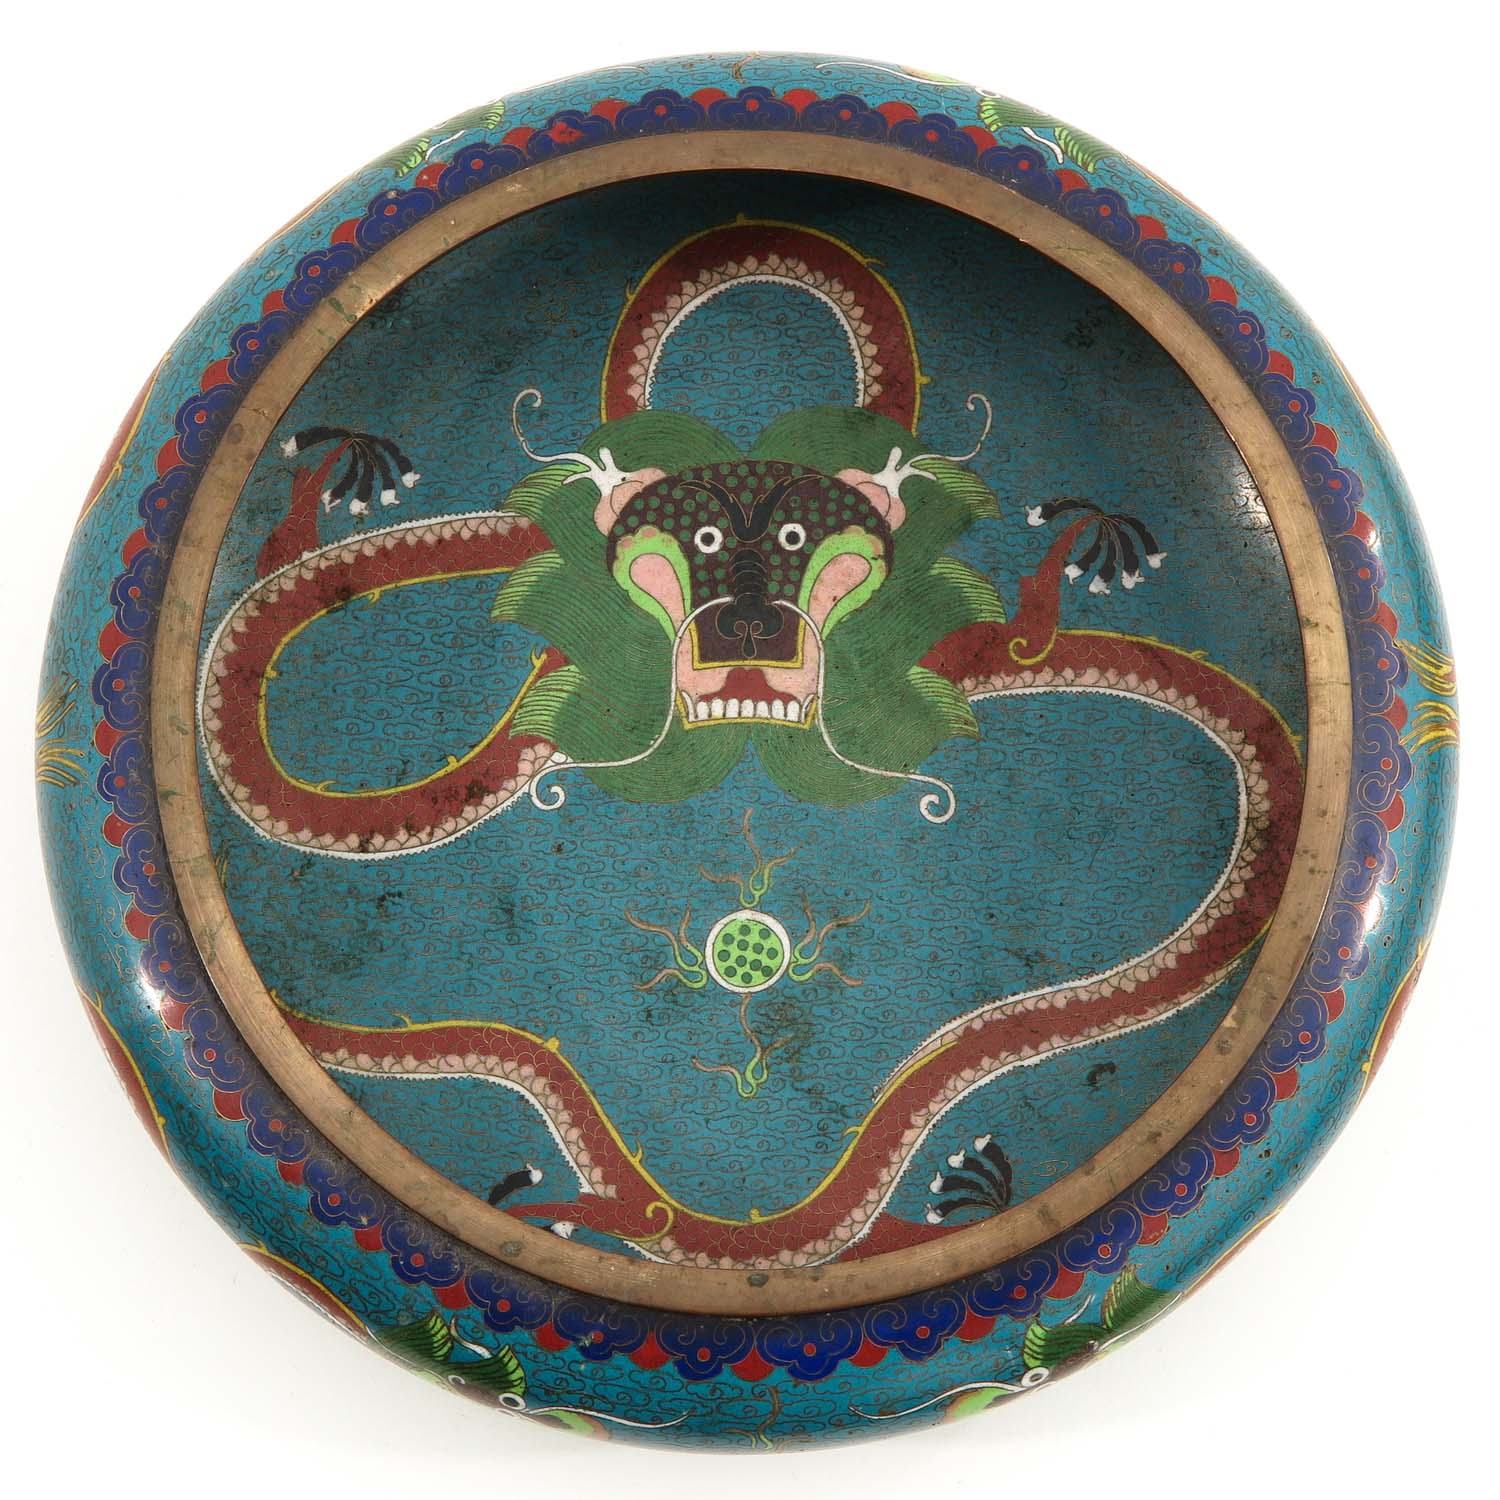 A Cloisonne Censer - Image 5 of 10